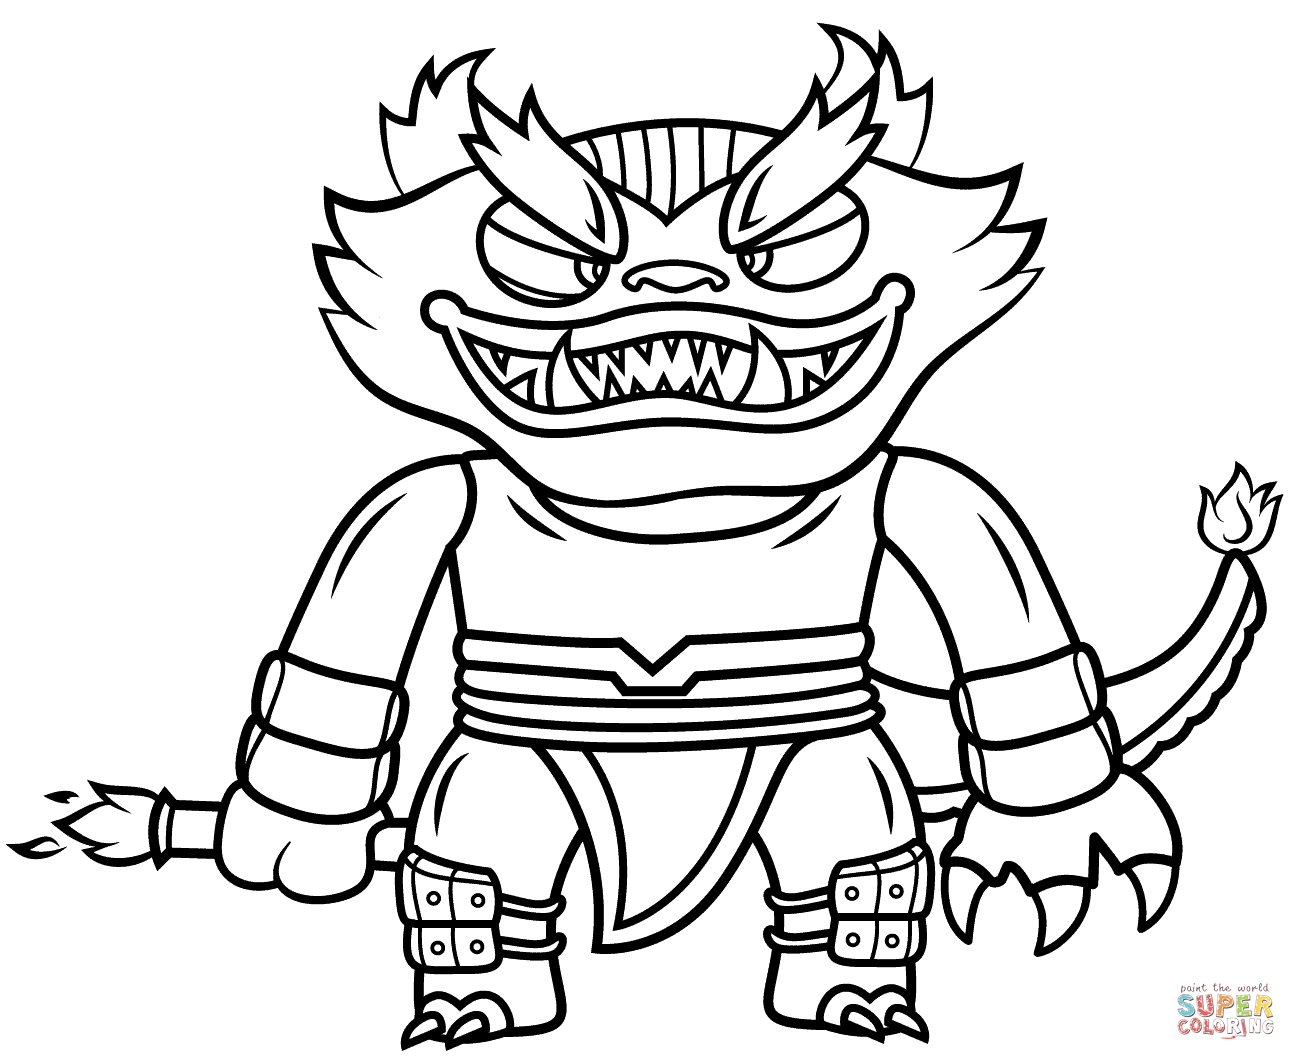 Coloriage - Skylanders Swap Force Fire Kraken | Coloriages à Coloriage Skylanders Swap Force